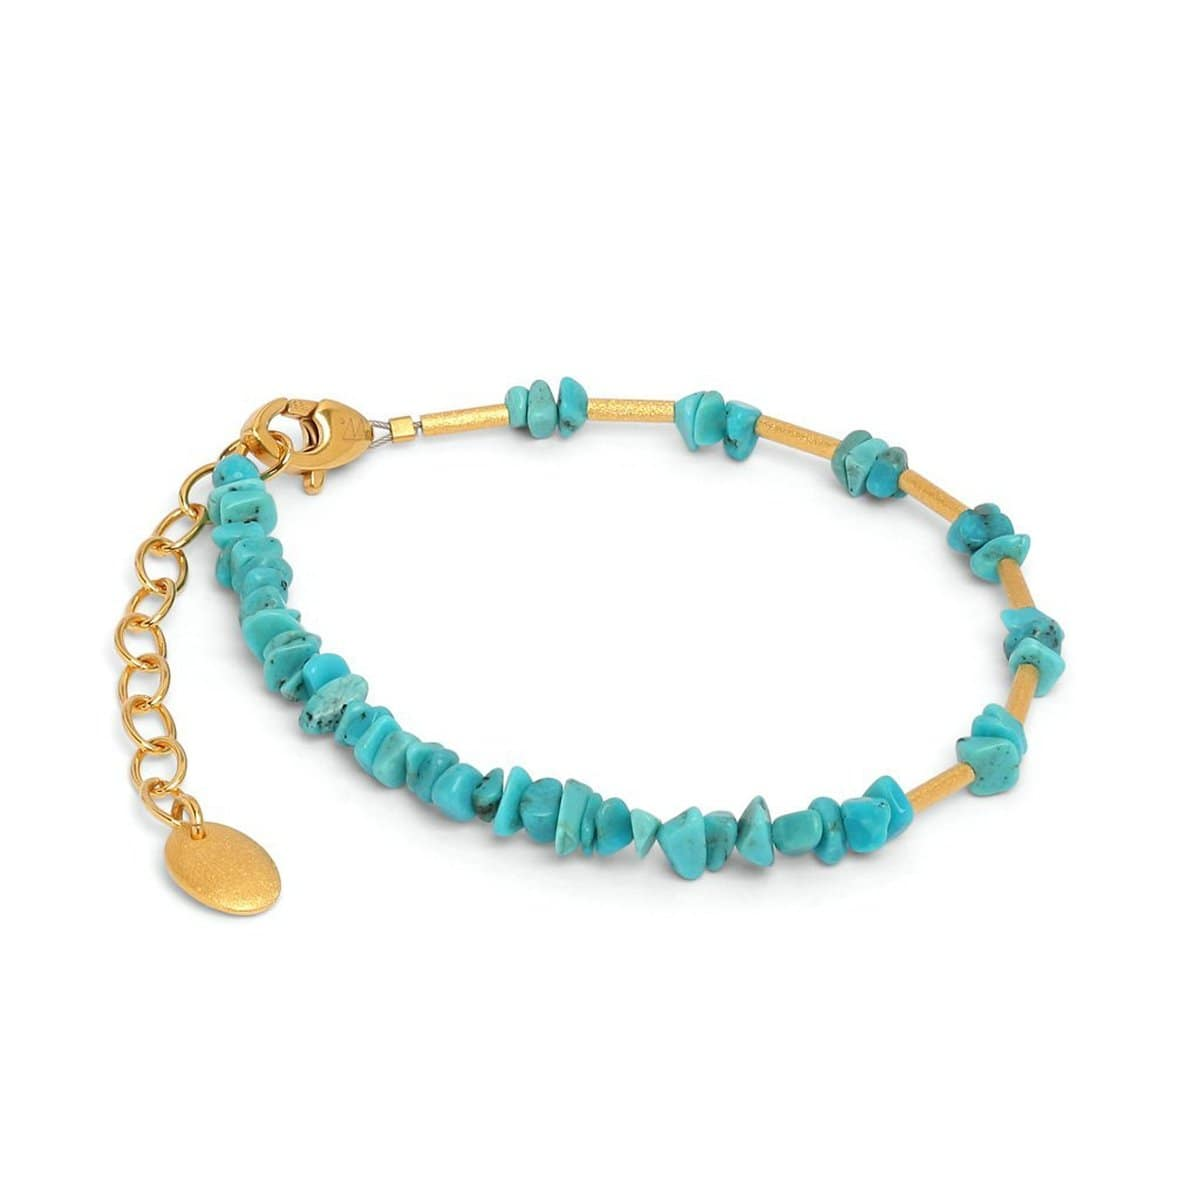 Chipas Turquoise Bracelet - 82274256-Bernd Wolf-Renee Taylor Gallery